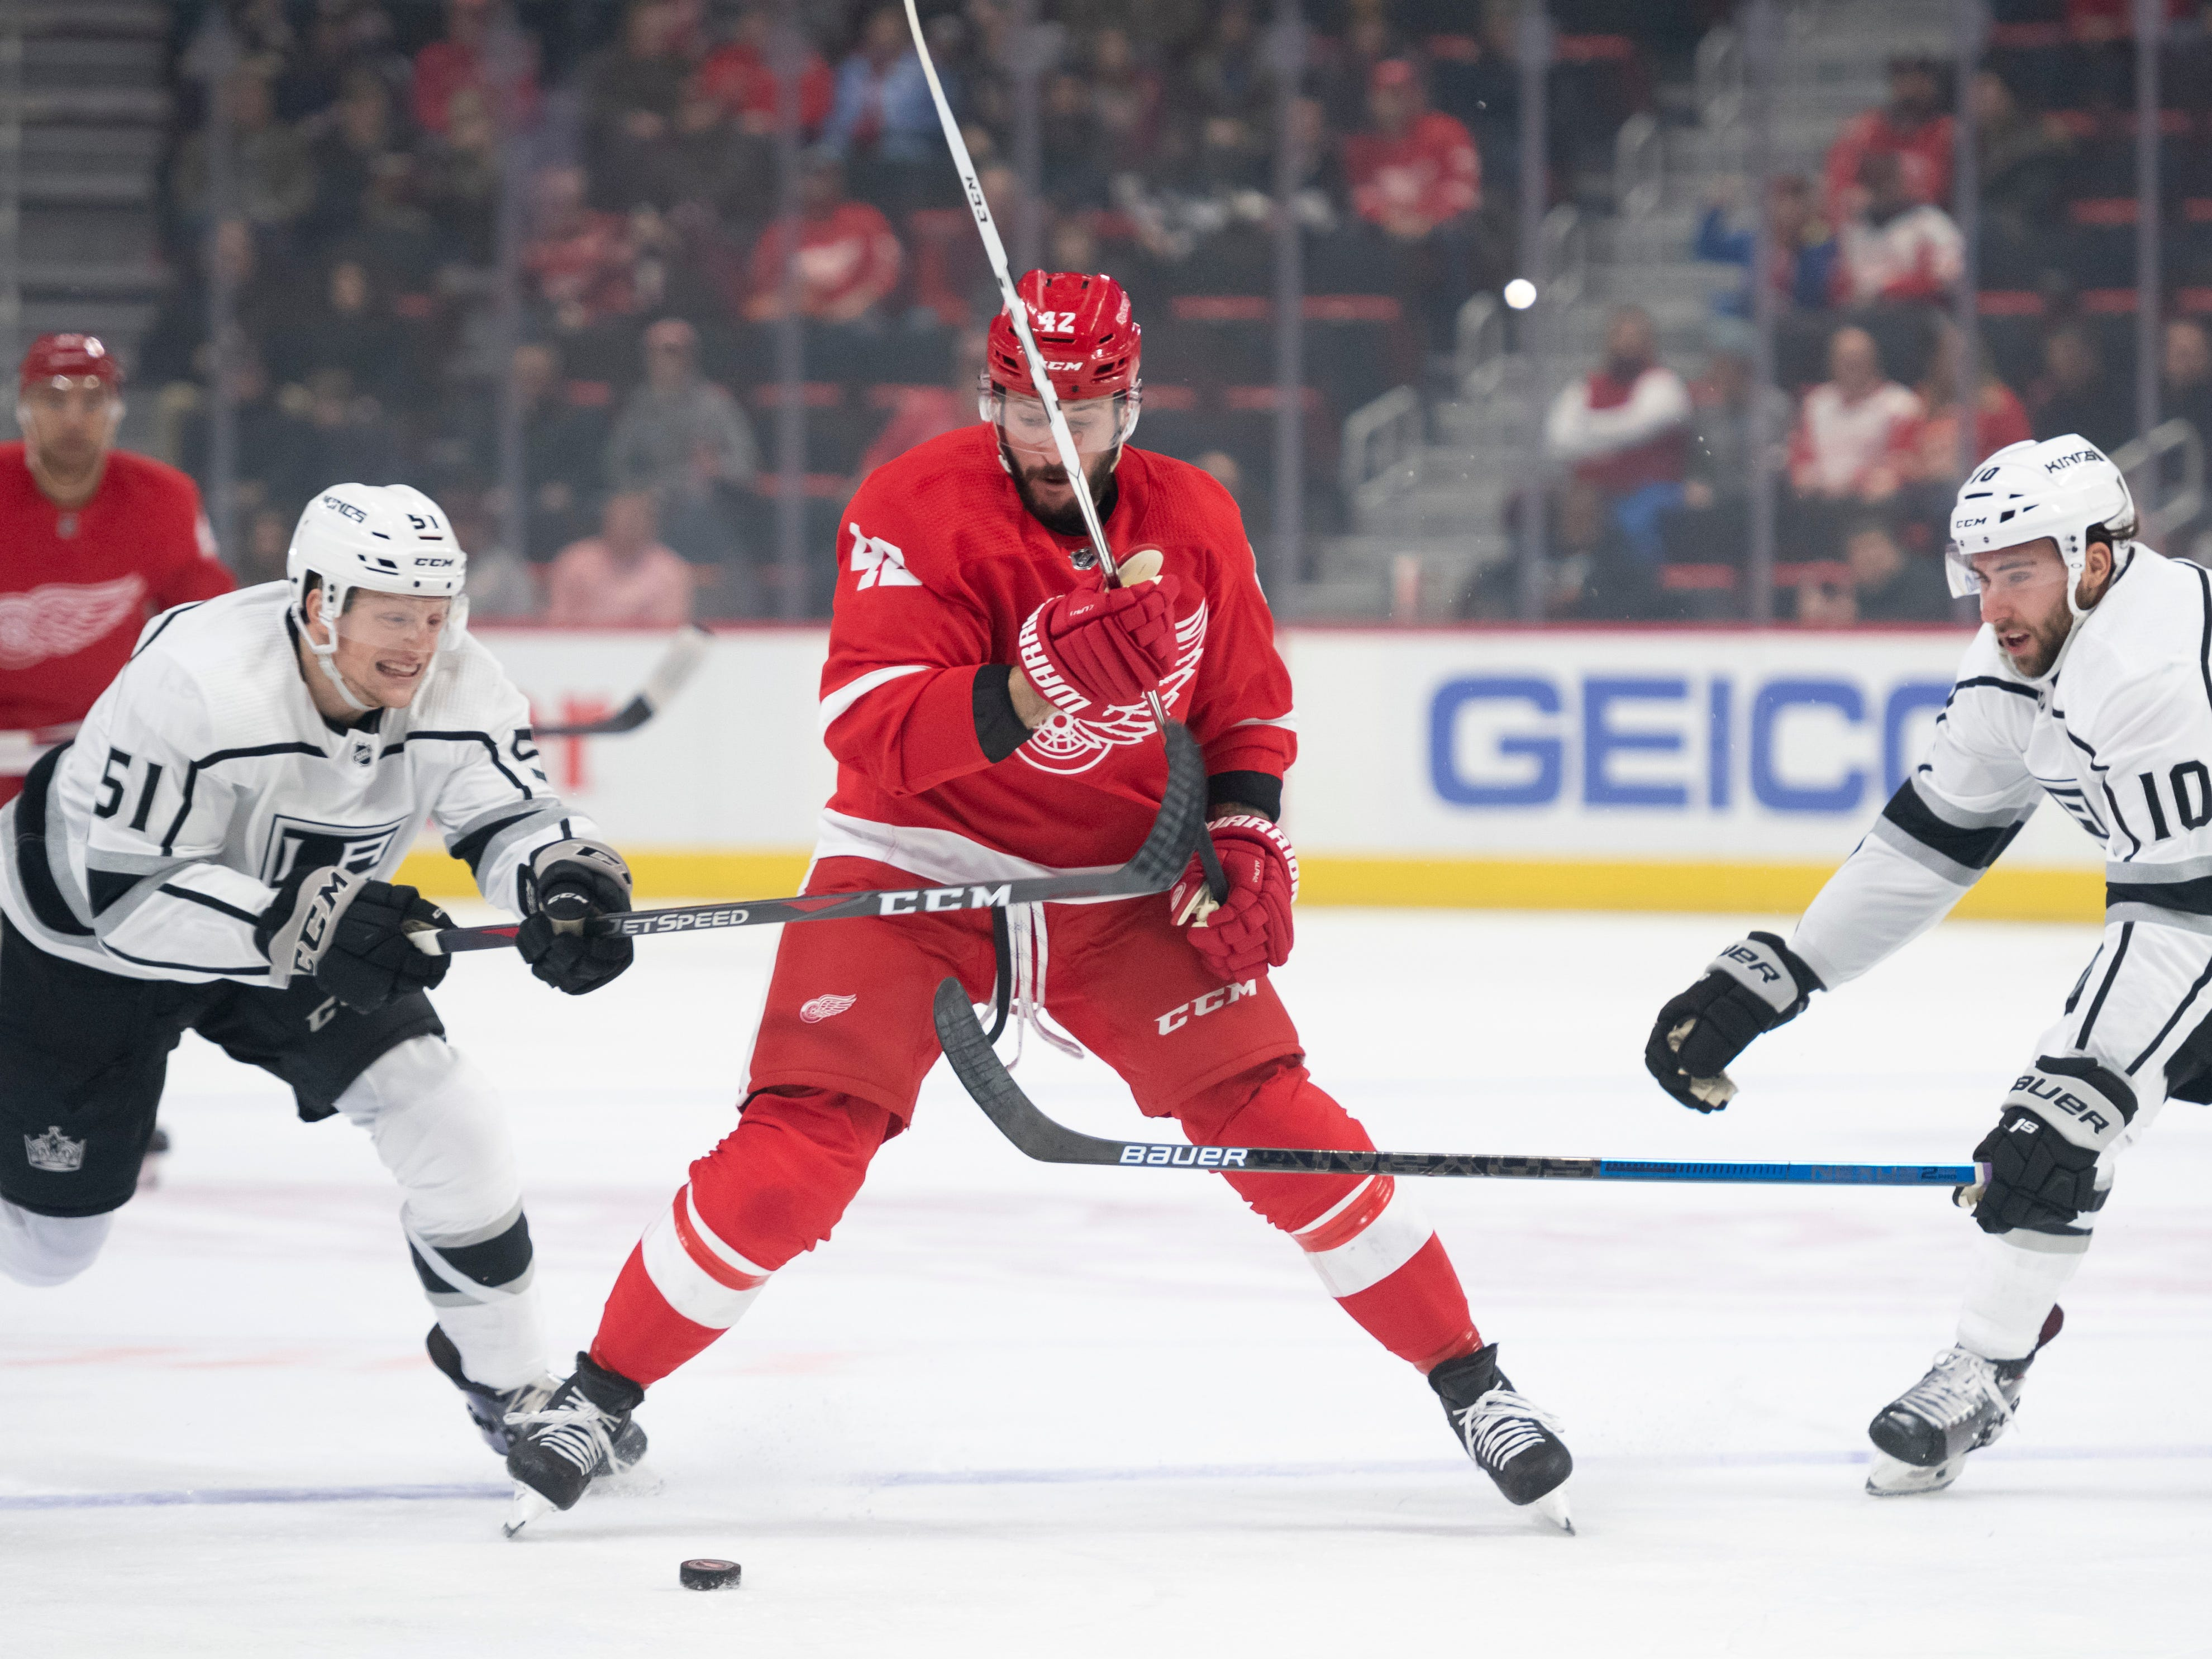 Detroit right wing Martin Frk battles for the puck with Los Angeles left wing Austin Wagner, left, and center Michael Amadio in the first period.